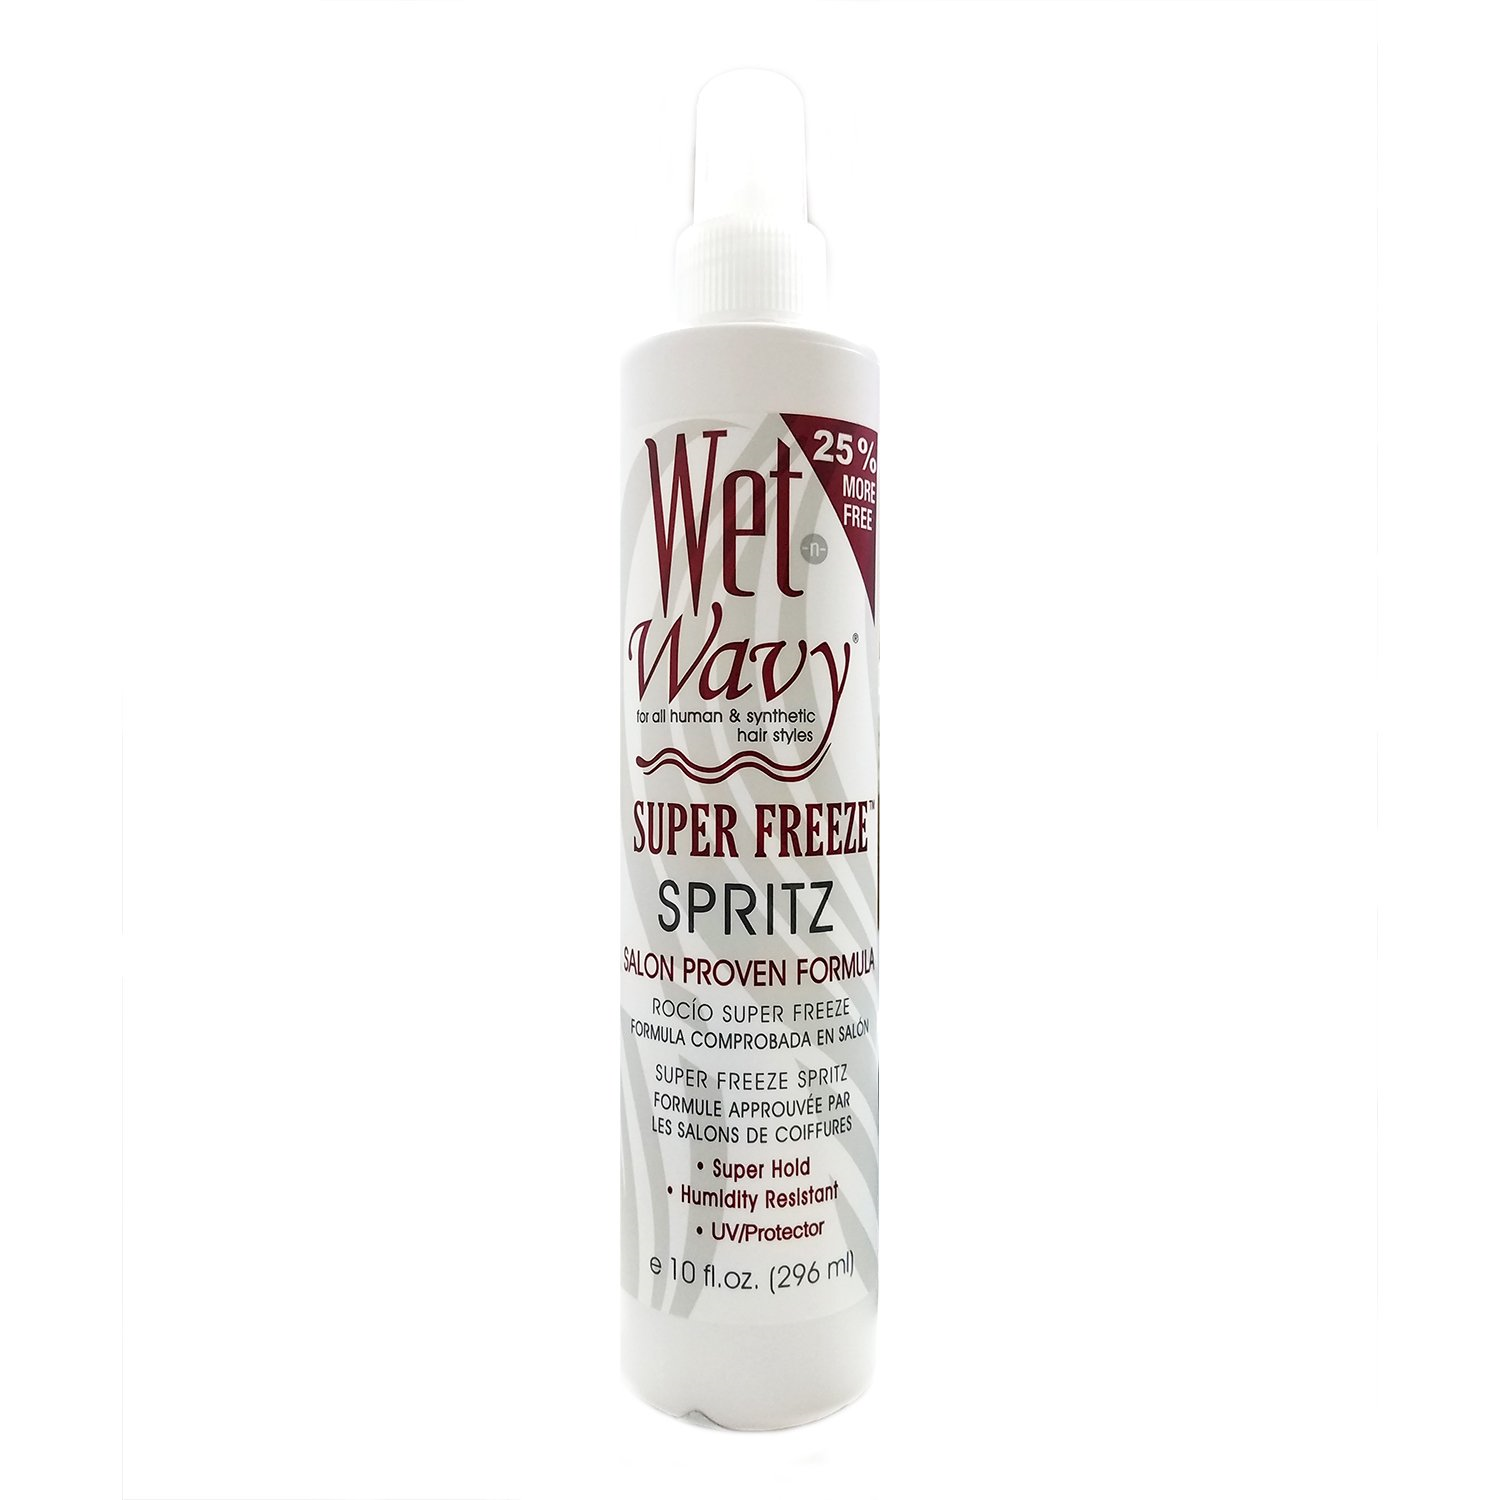 Wet n Wavy Synthetic And Natural Hair Waves Super freezeSpritz 10oz